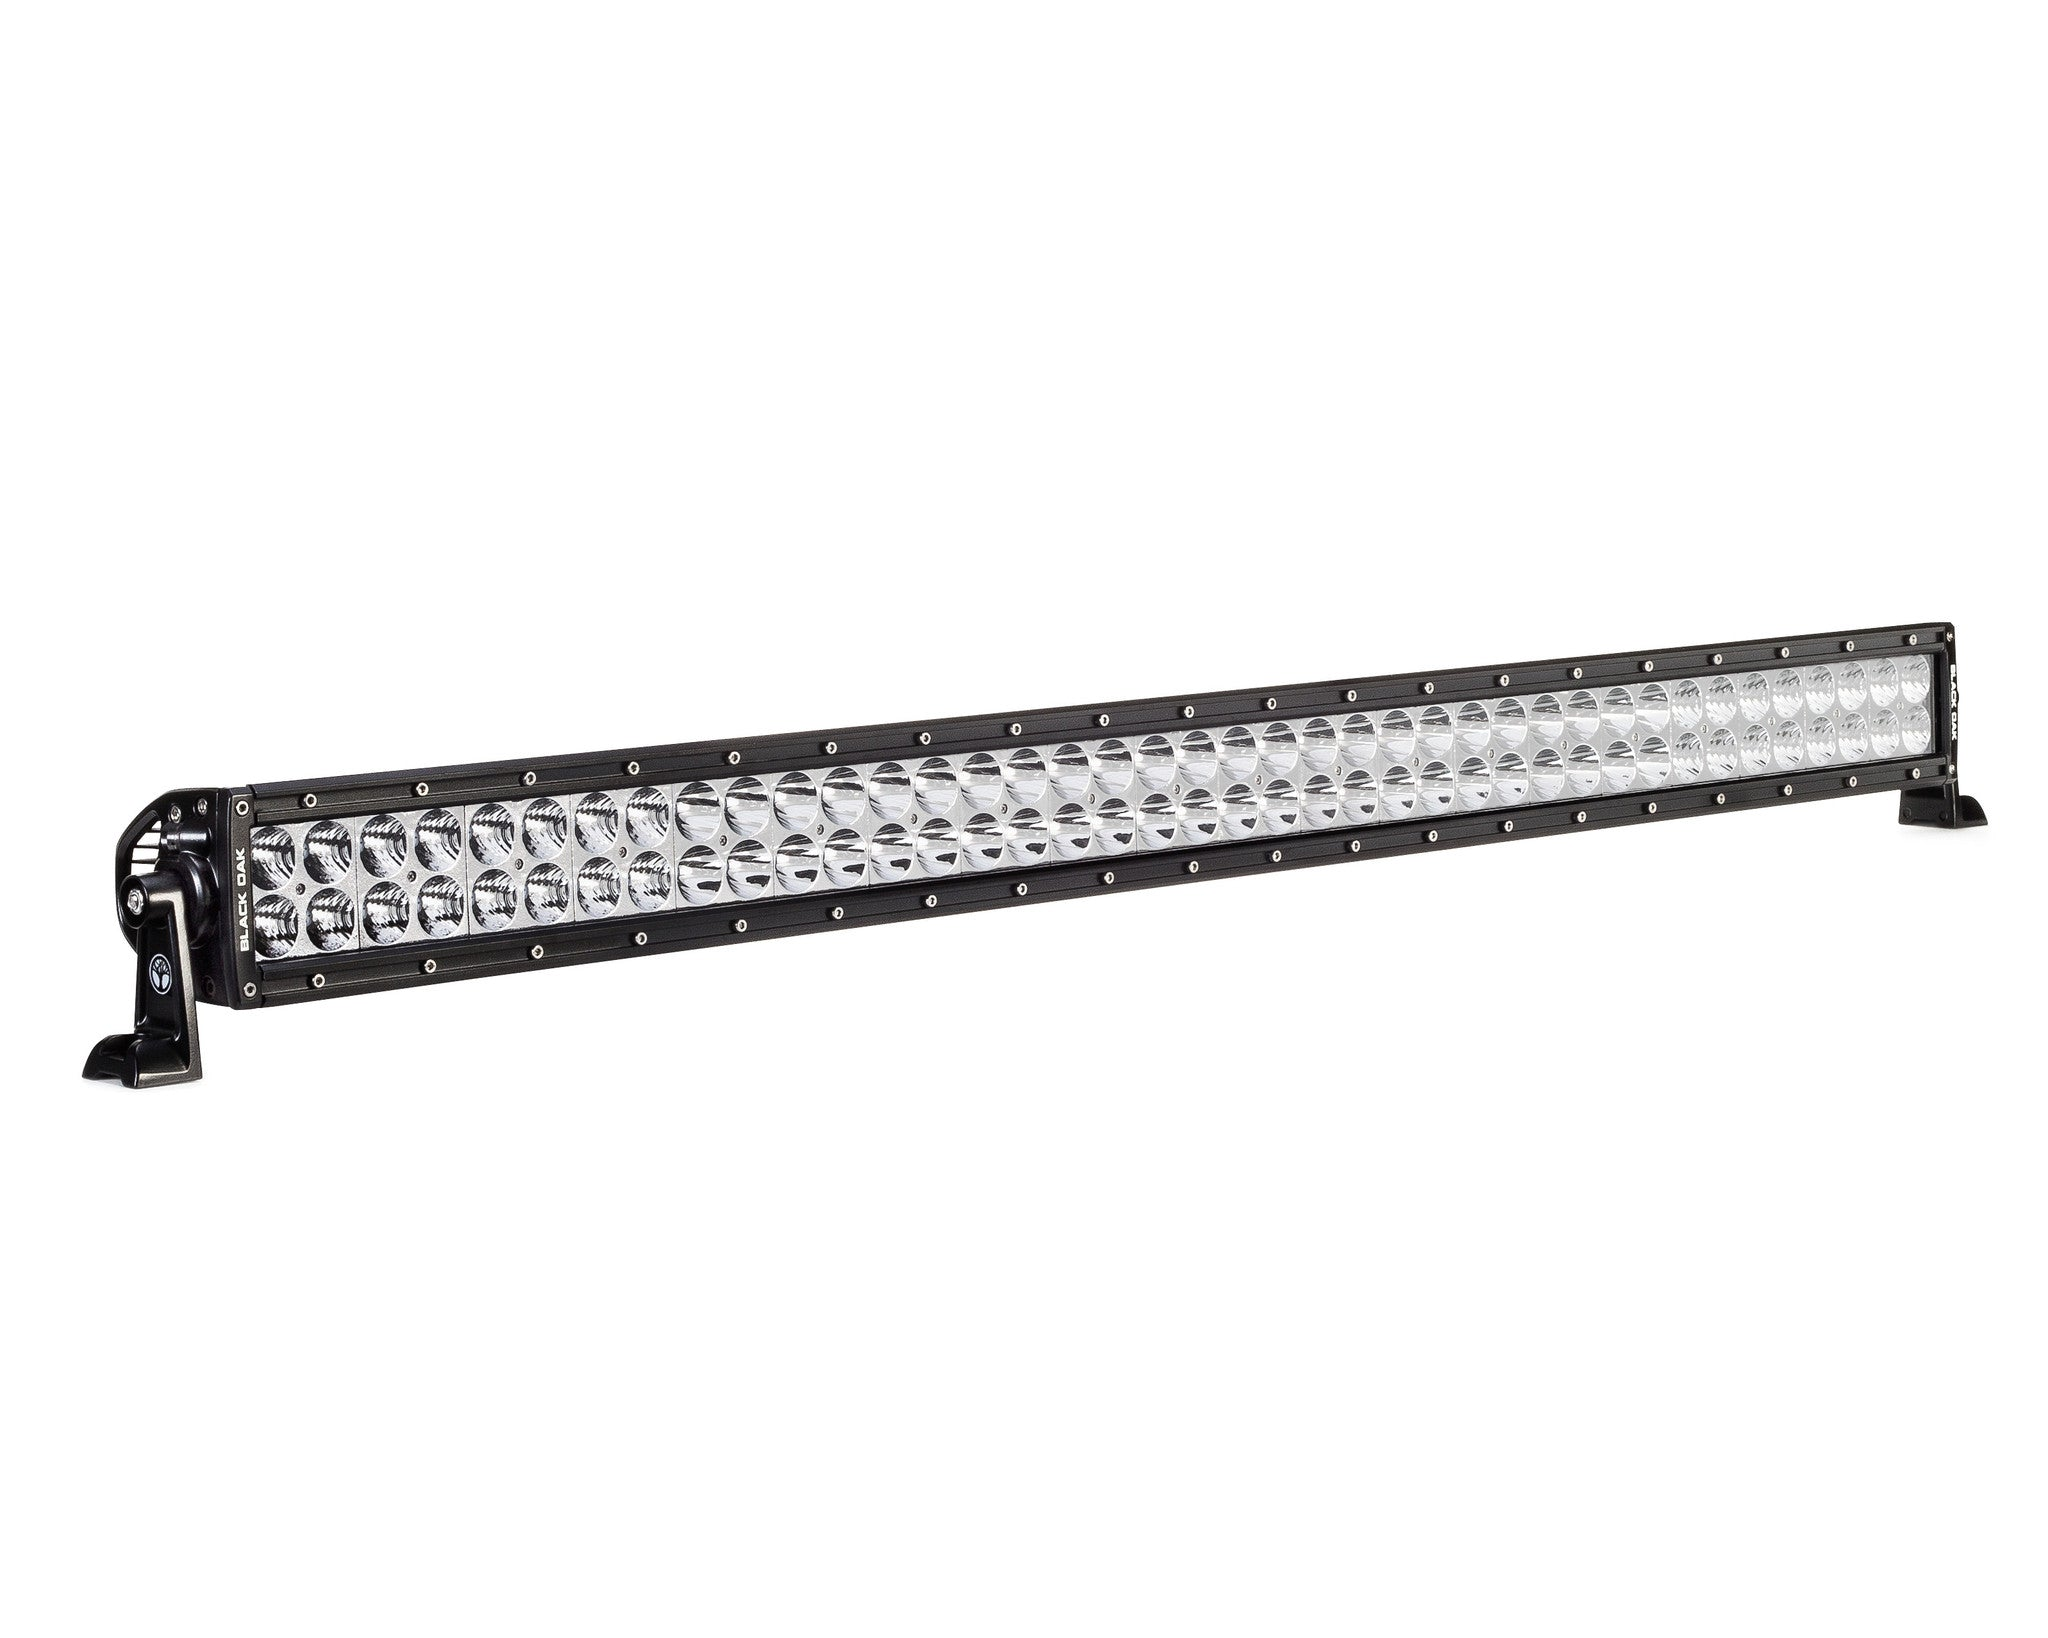 40 Inch LED Light Bars